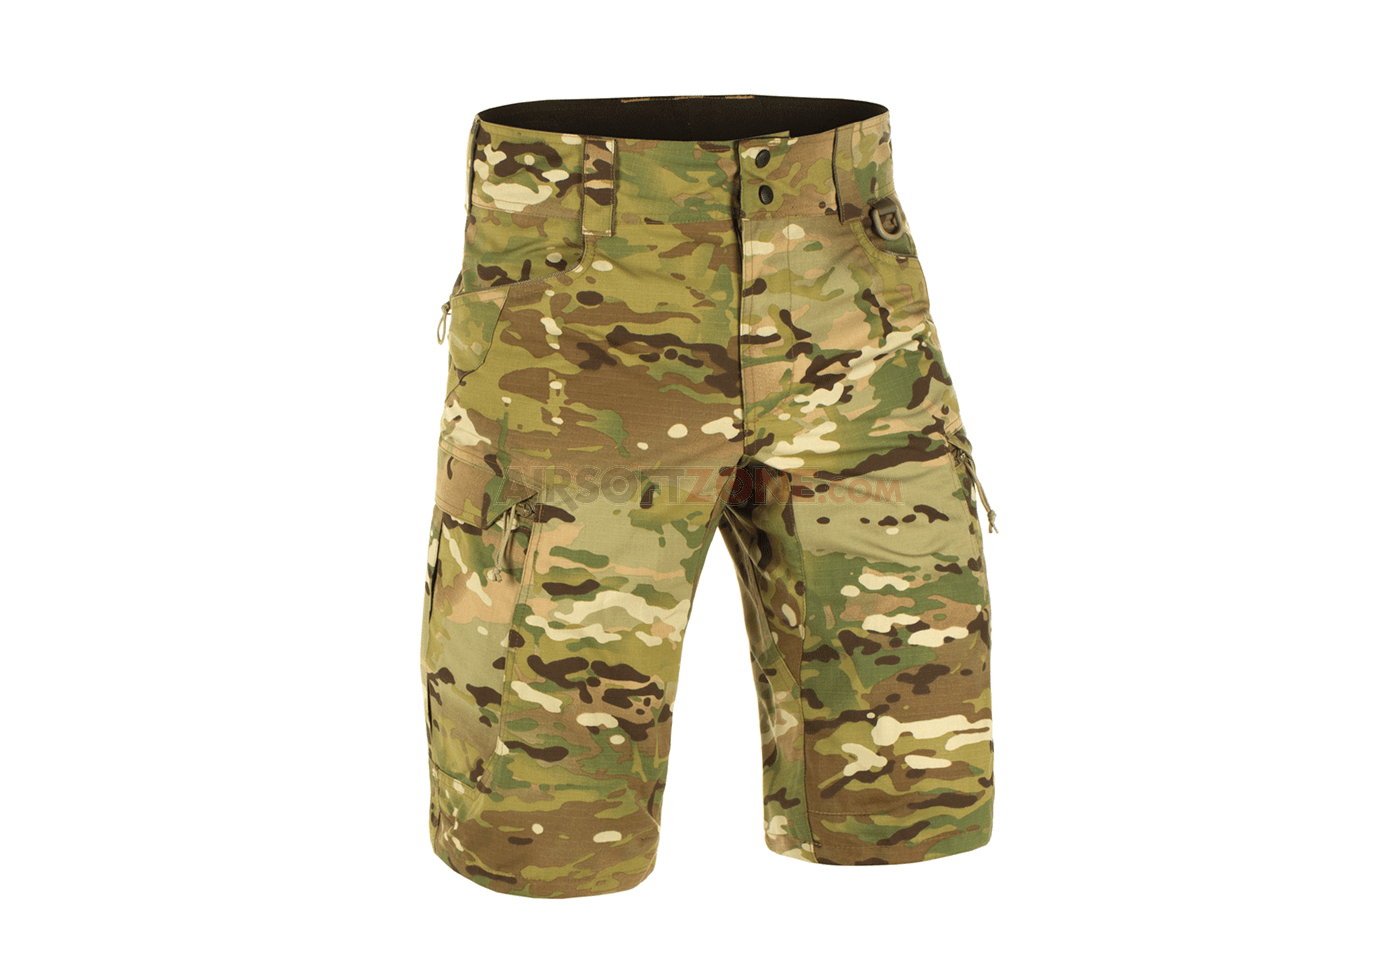 6f449a3bc0 Field Short Multicam NYCO (Clawgear) 29 - Short Pants - Pants ...